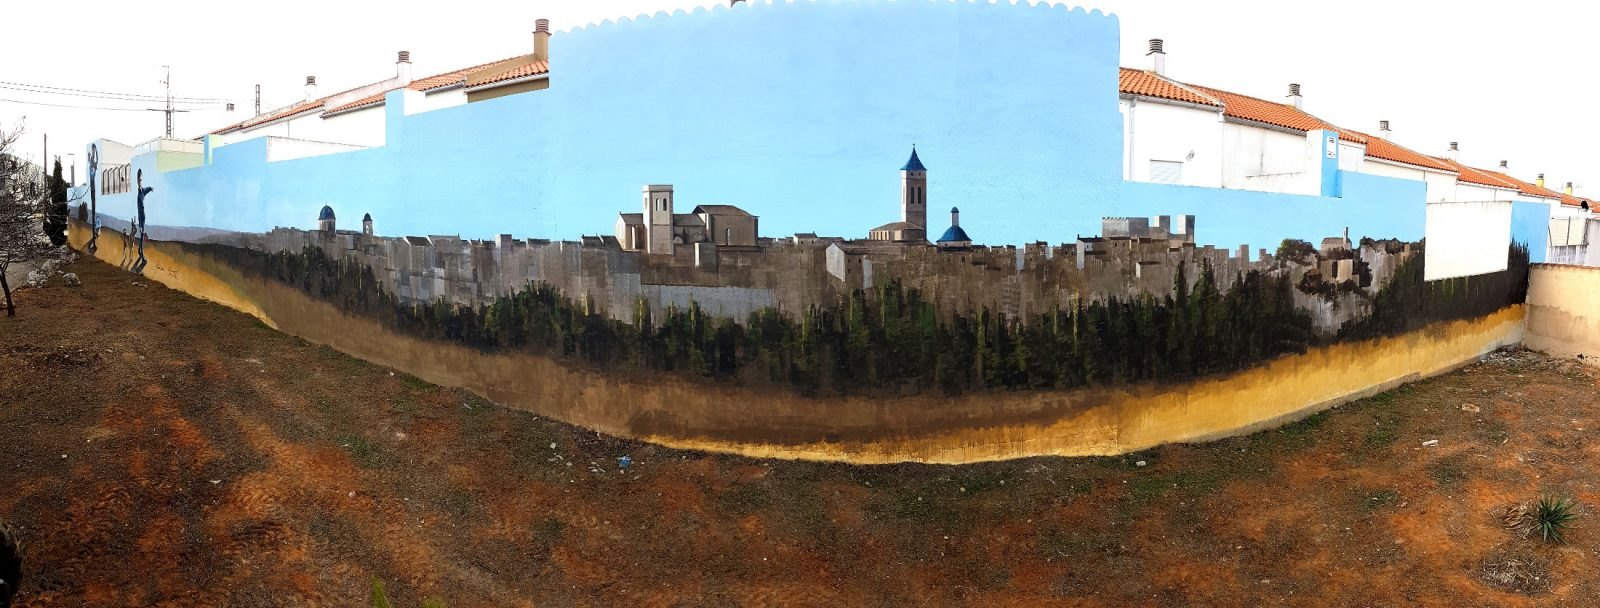 mural panoramica requena